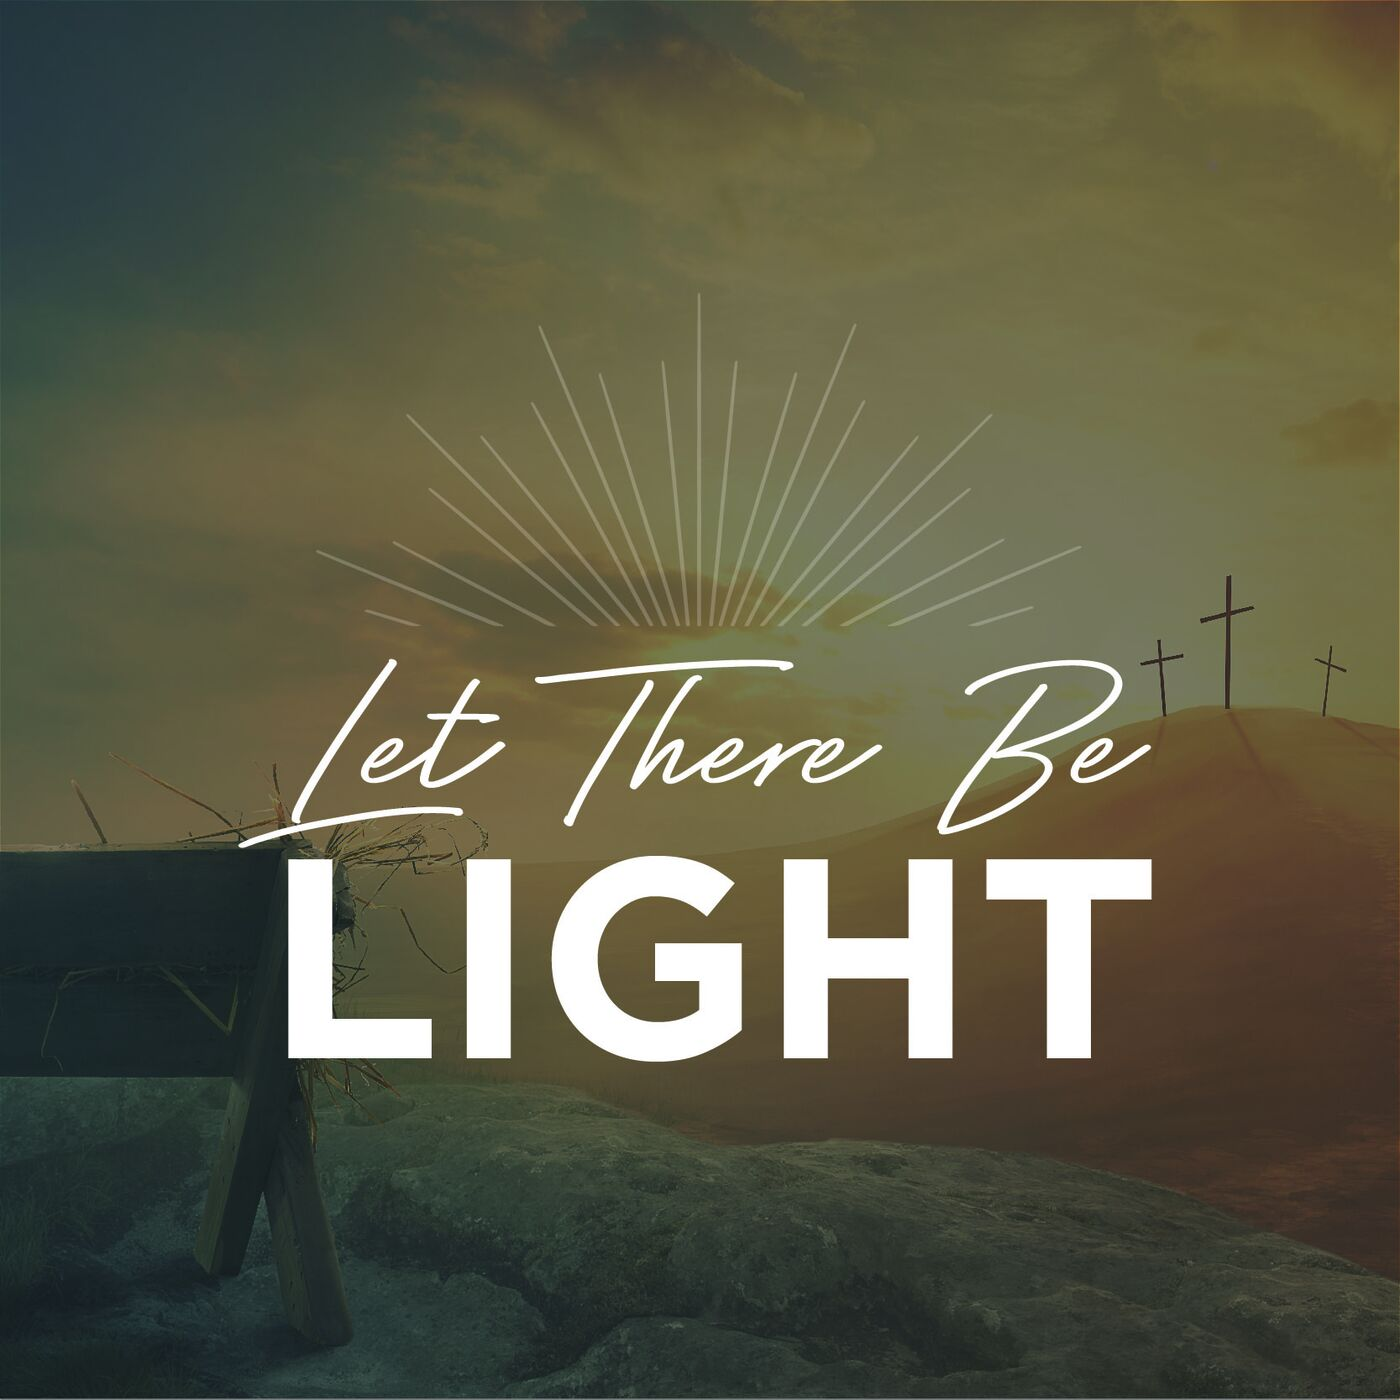 Let There Be Light  -  Light in the Night